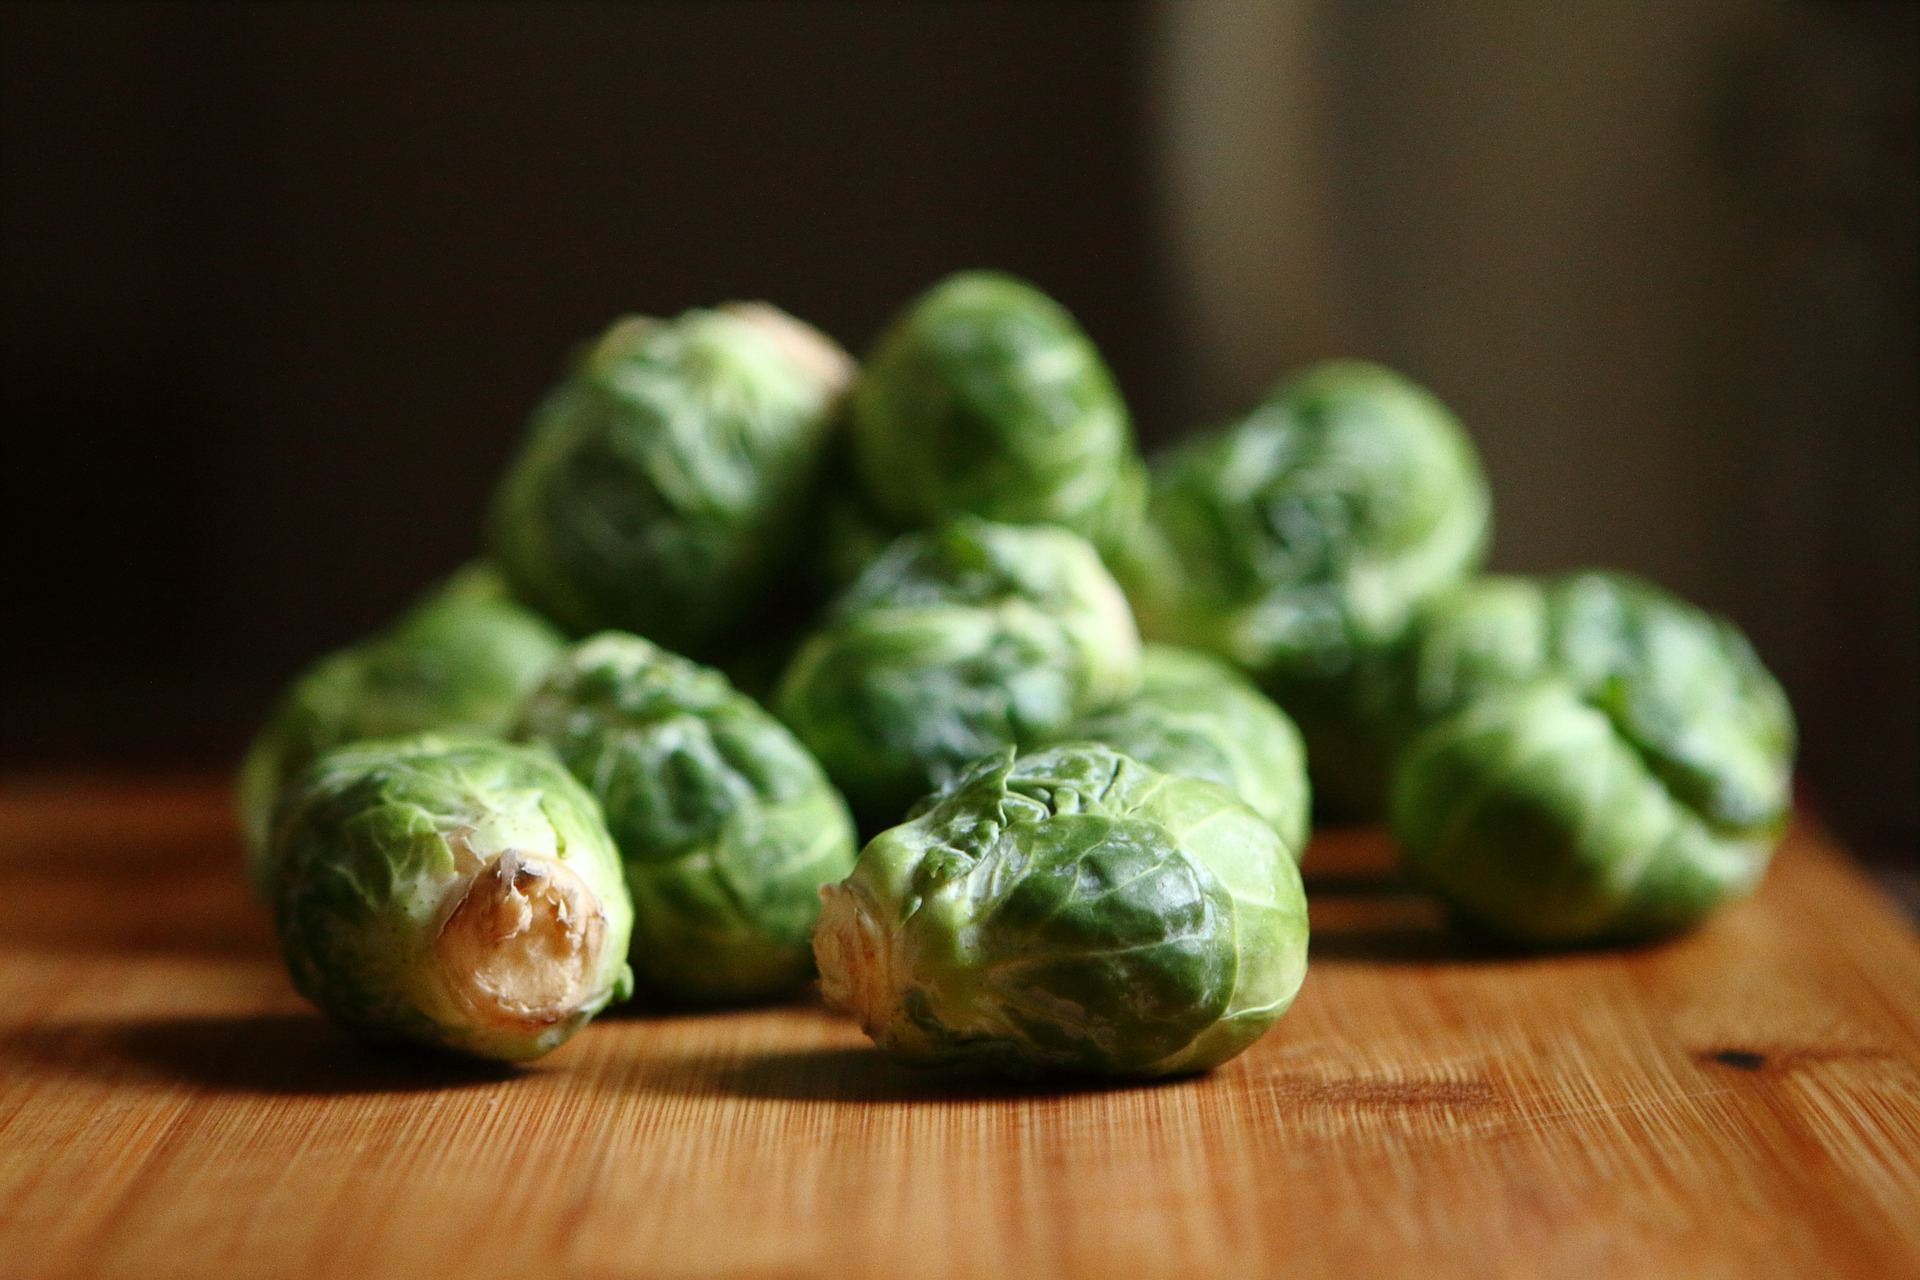 Oven Roasted Brussel Sprouts with Truffle Oil Recipe